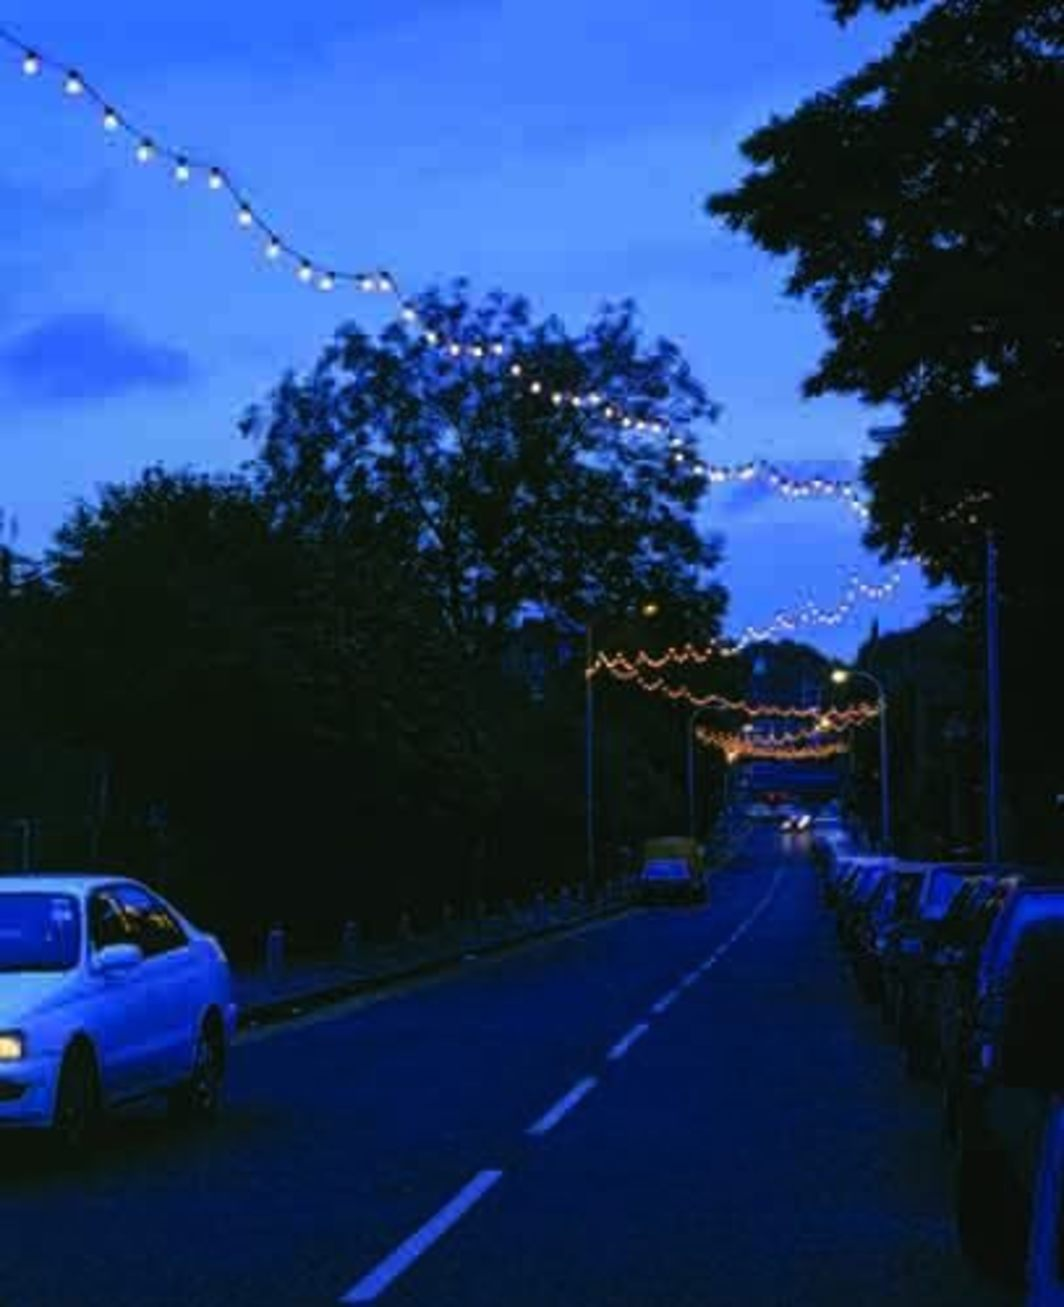 Felix Gonzalez-Torres, Untitled (America), 1994, lightbulbs, waterproof extension cords, waterproof rubber sockets. Installation view, Lymington Road, London, 2000.